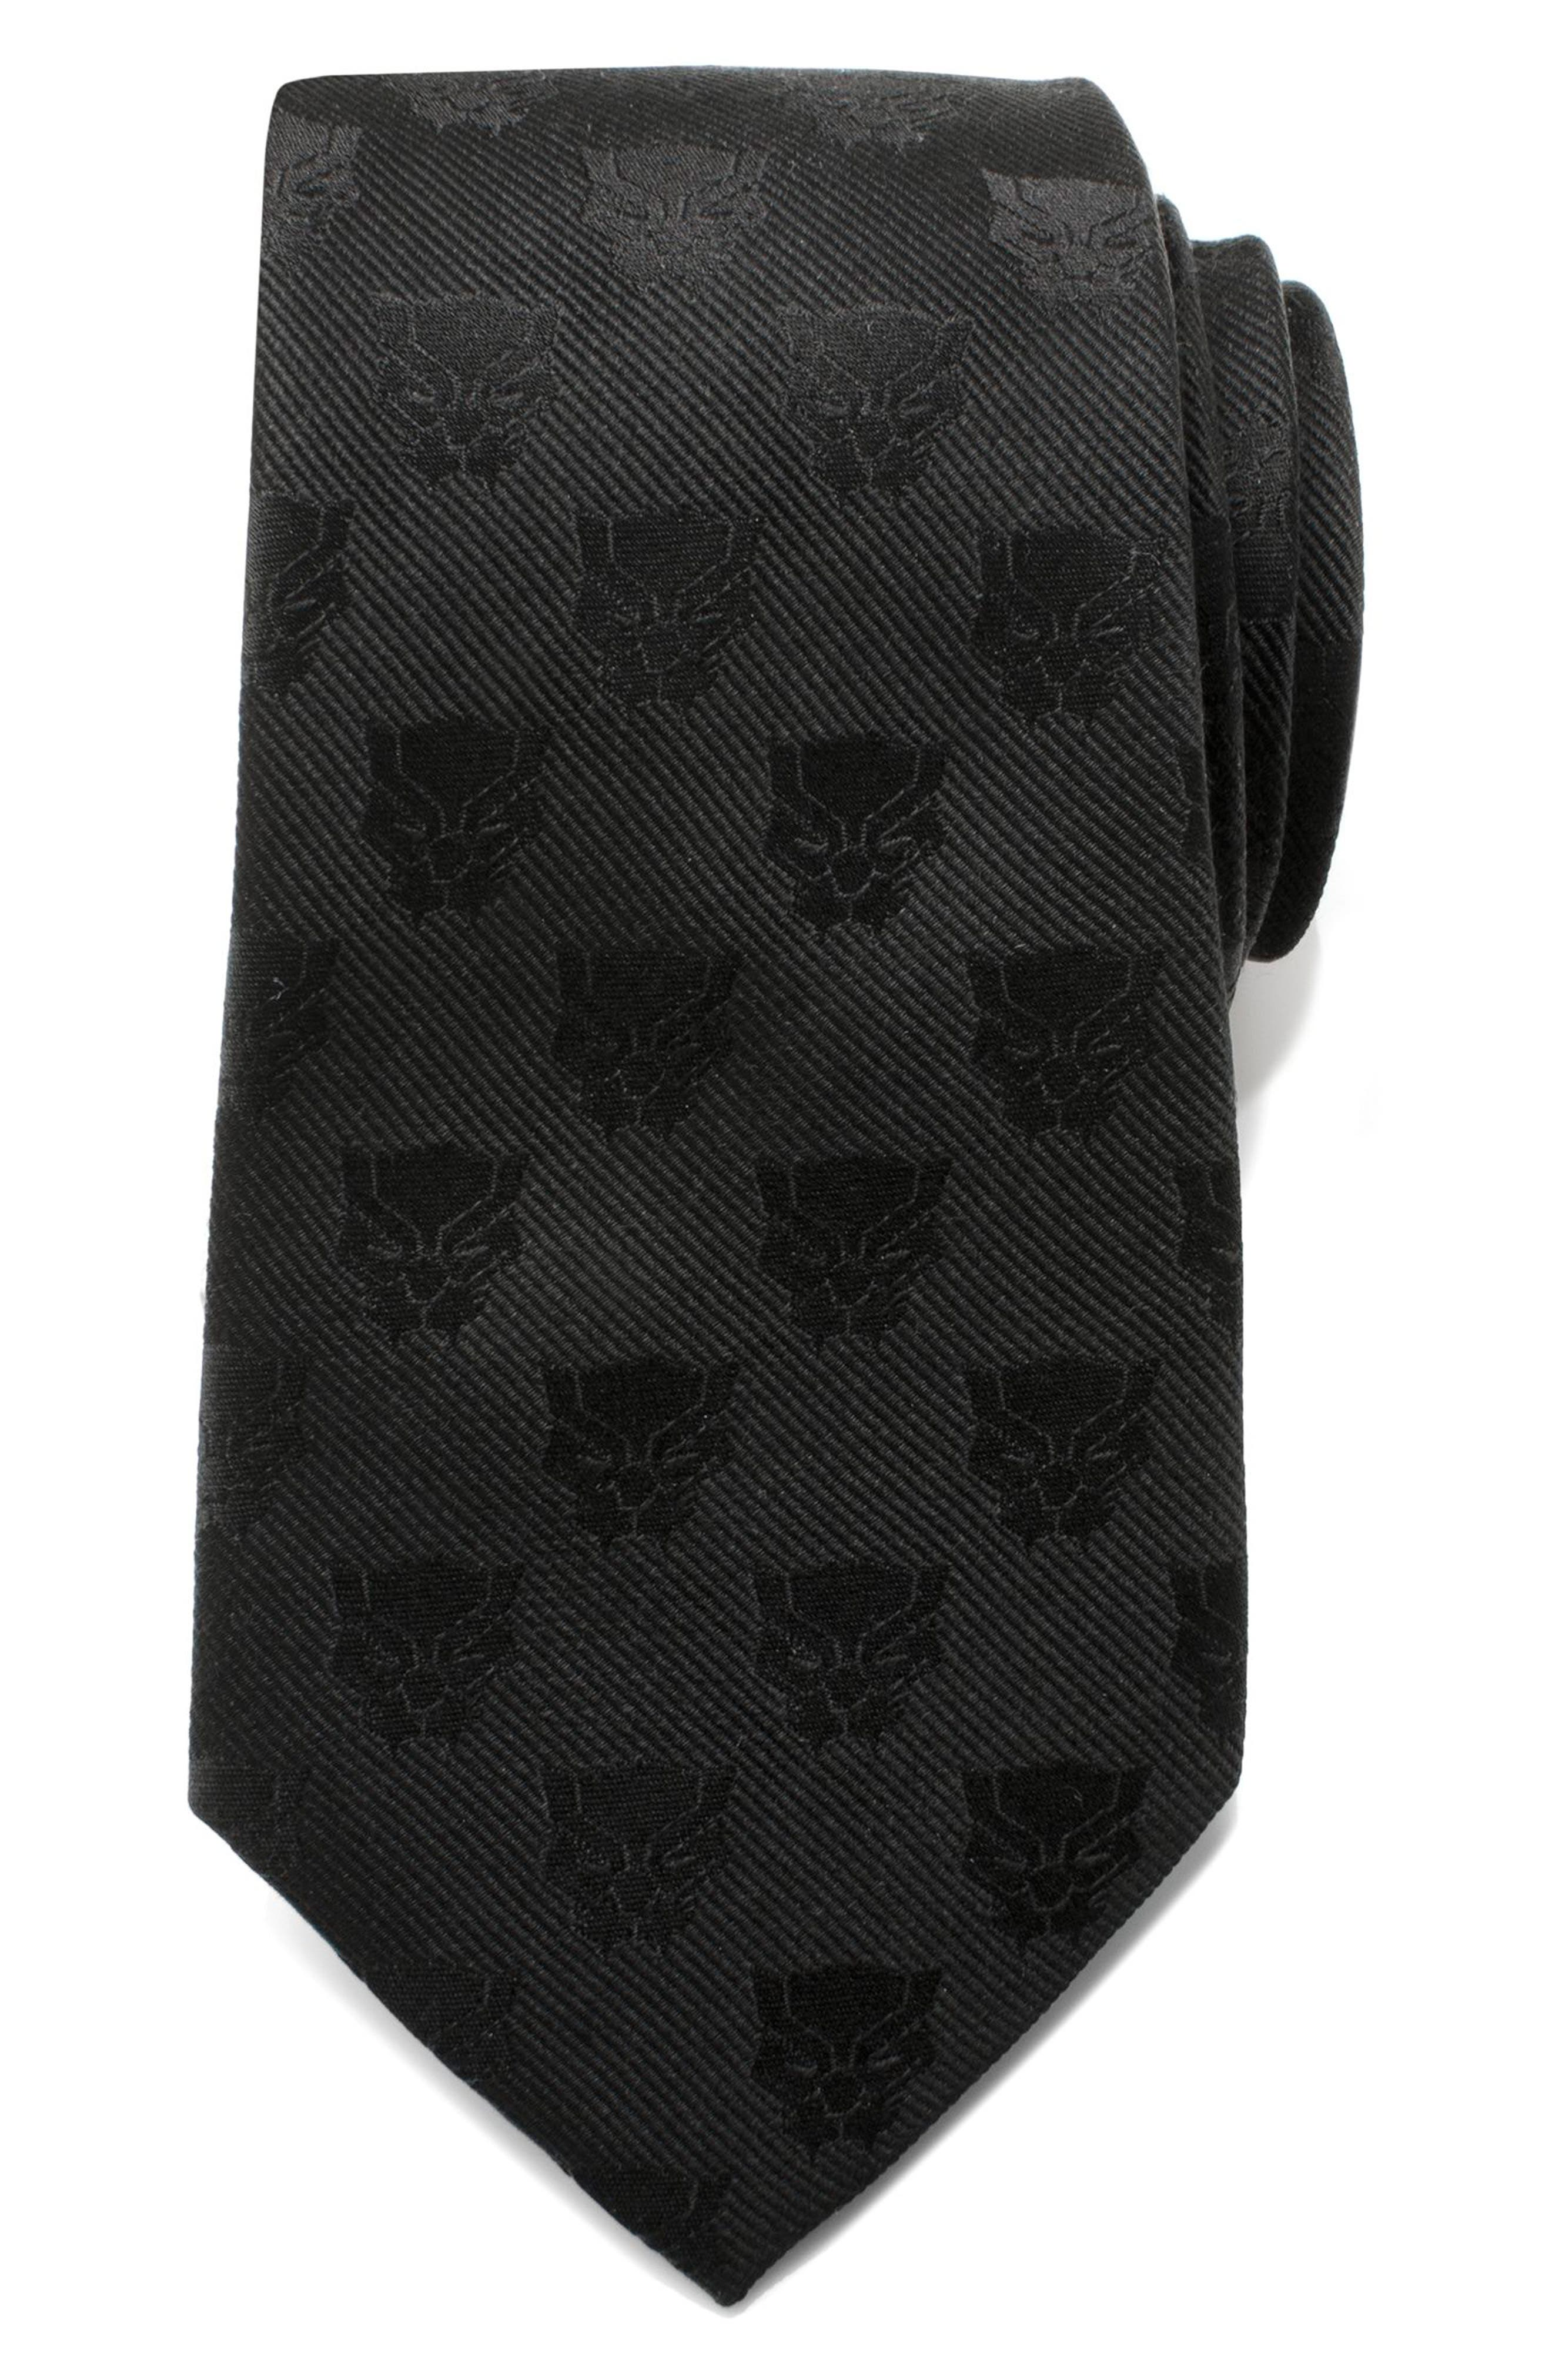 Black Panther Silk Tie,                         Main,                         color, Black